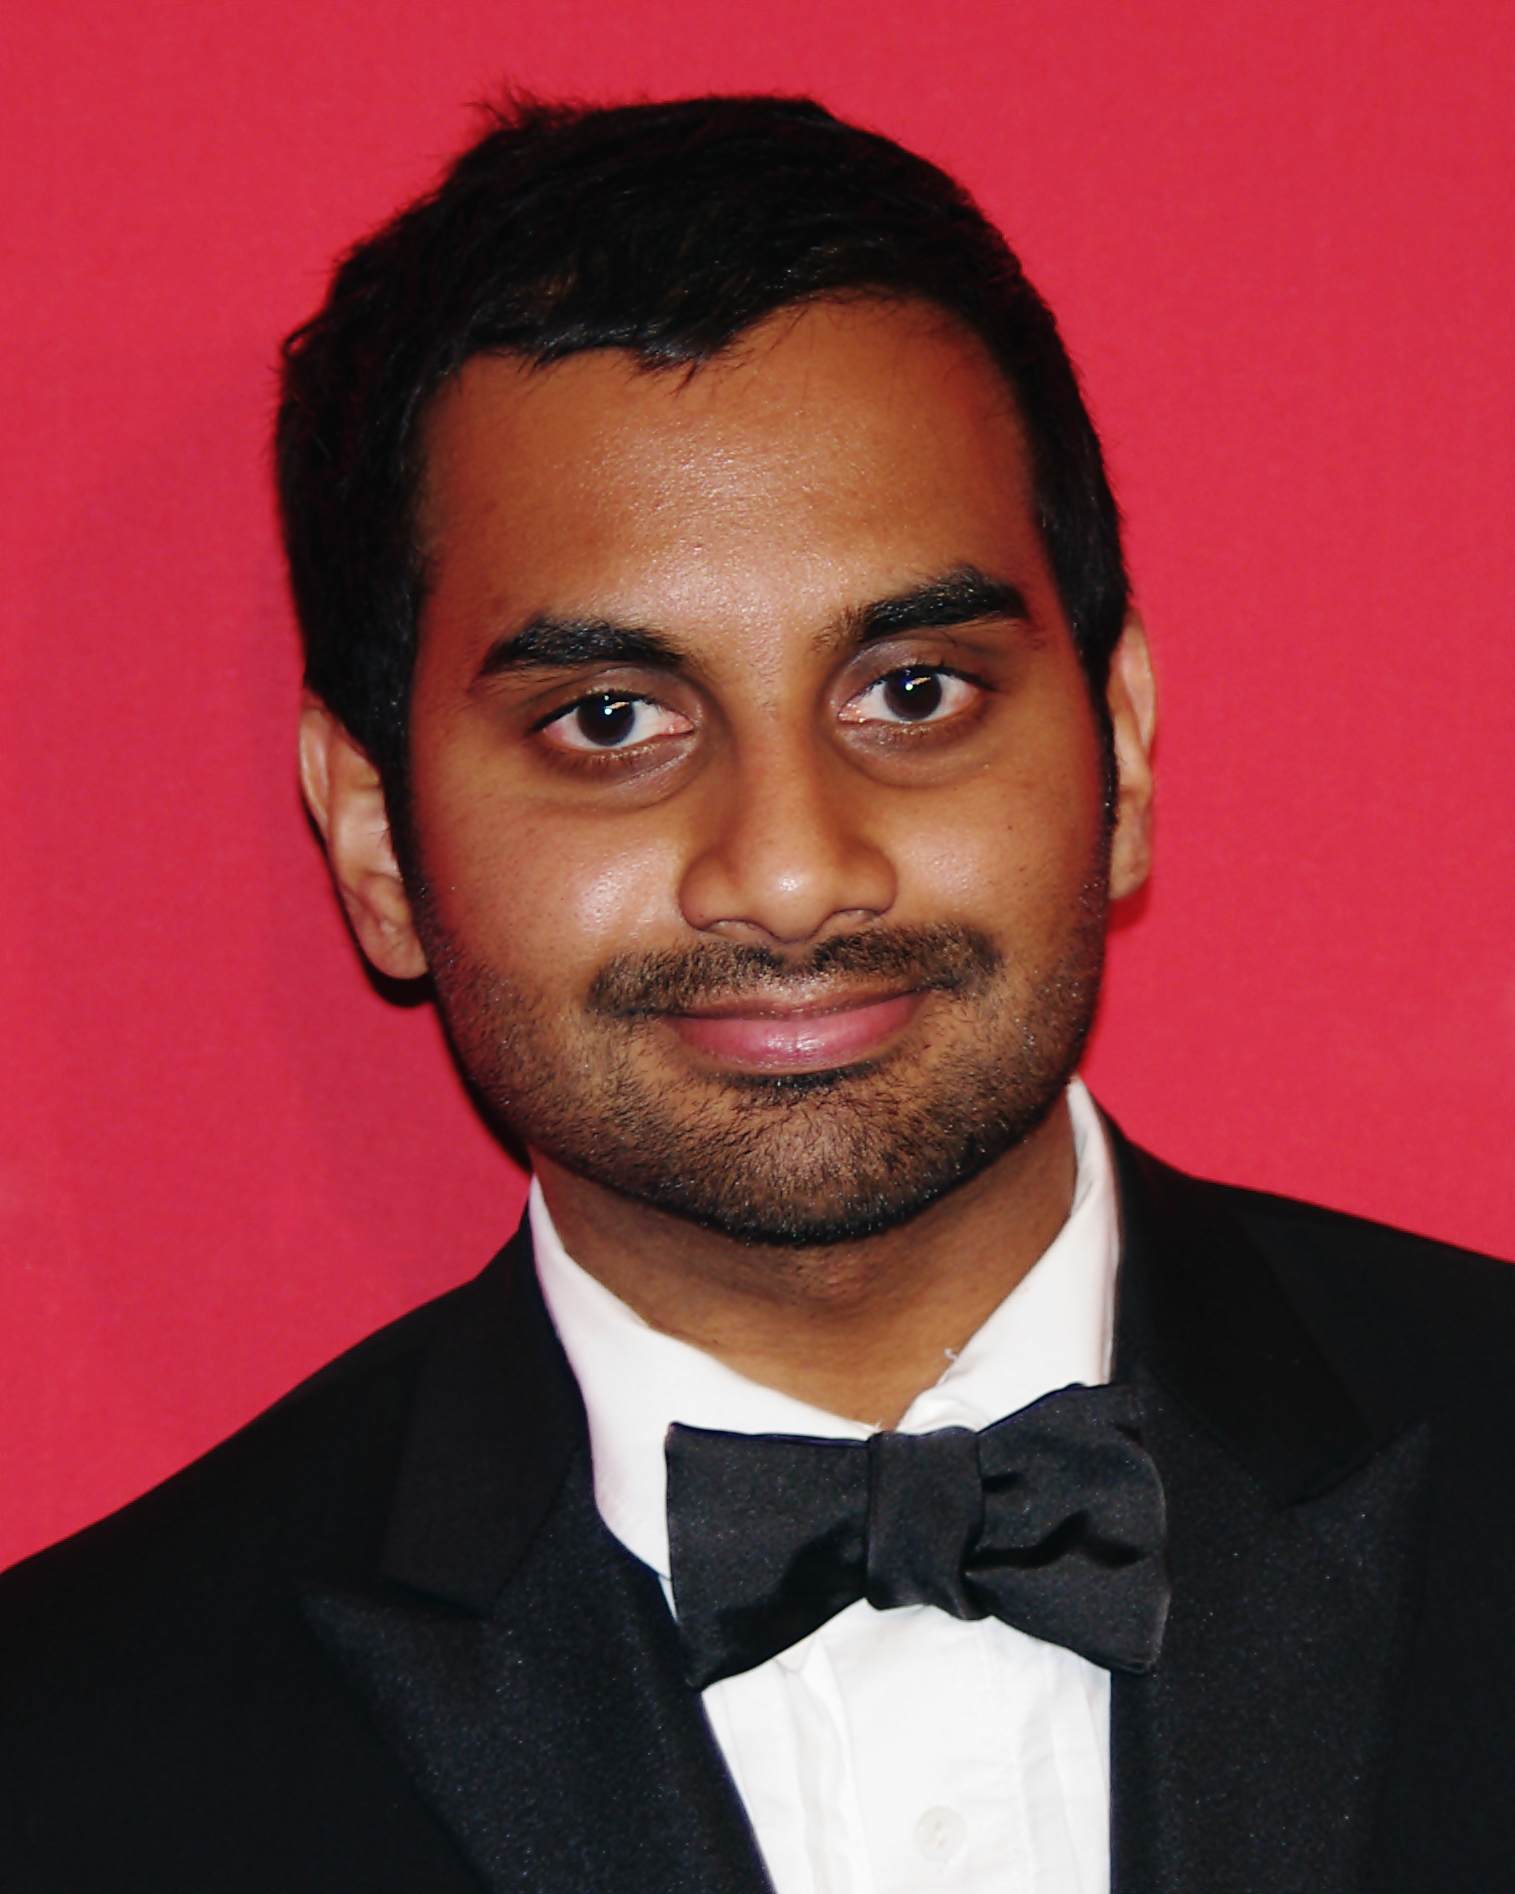 Aziz ansari girlfriend 2012 aziz ansari